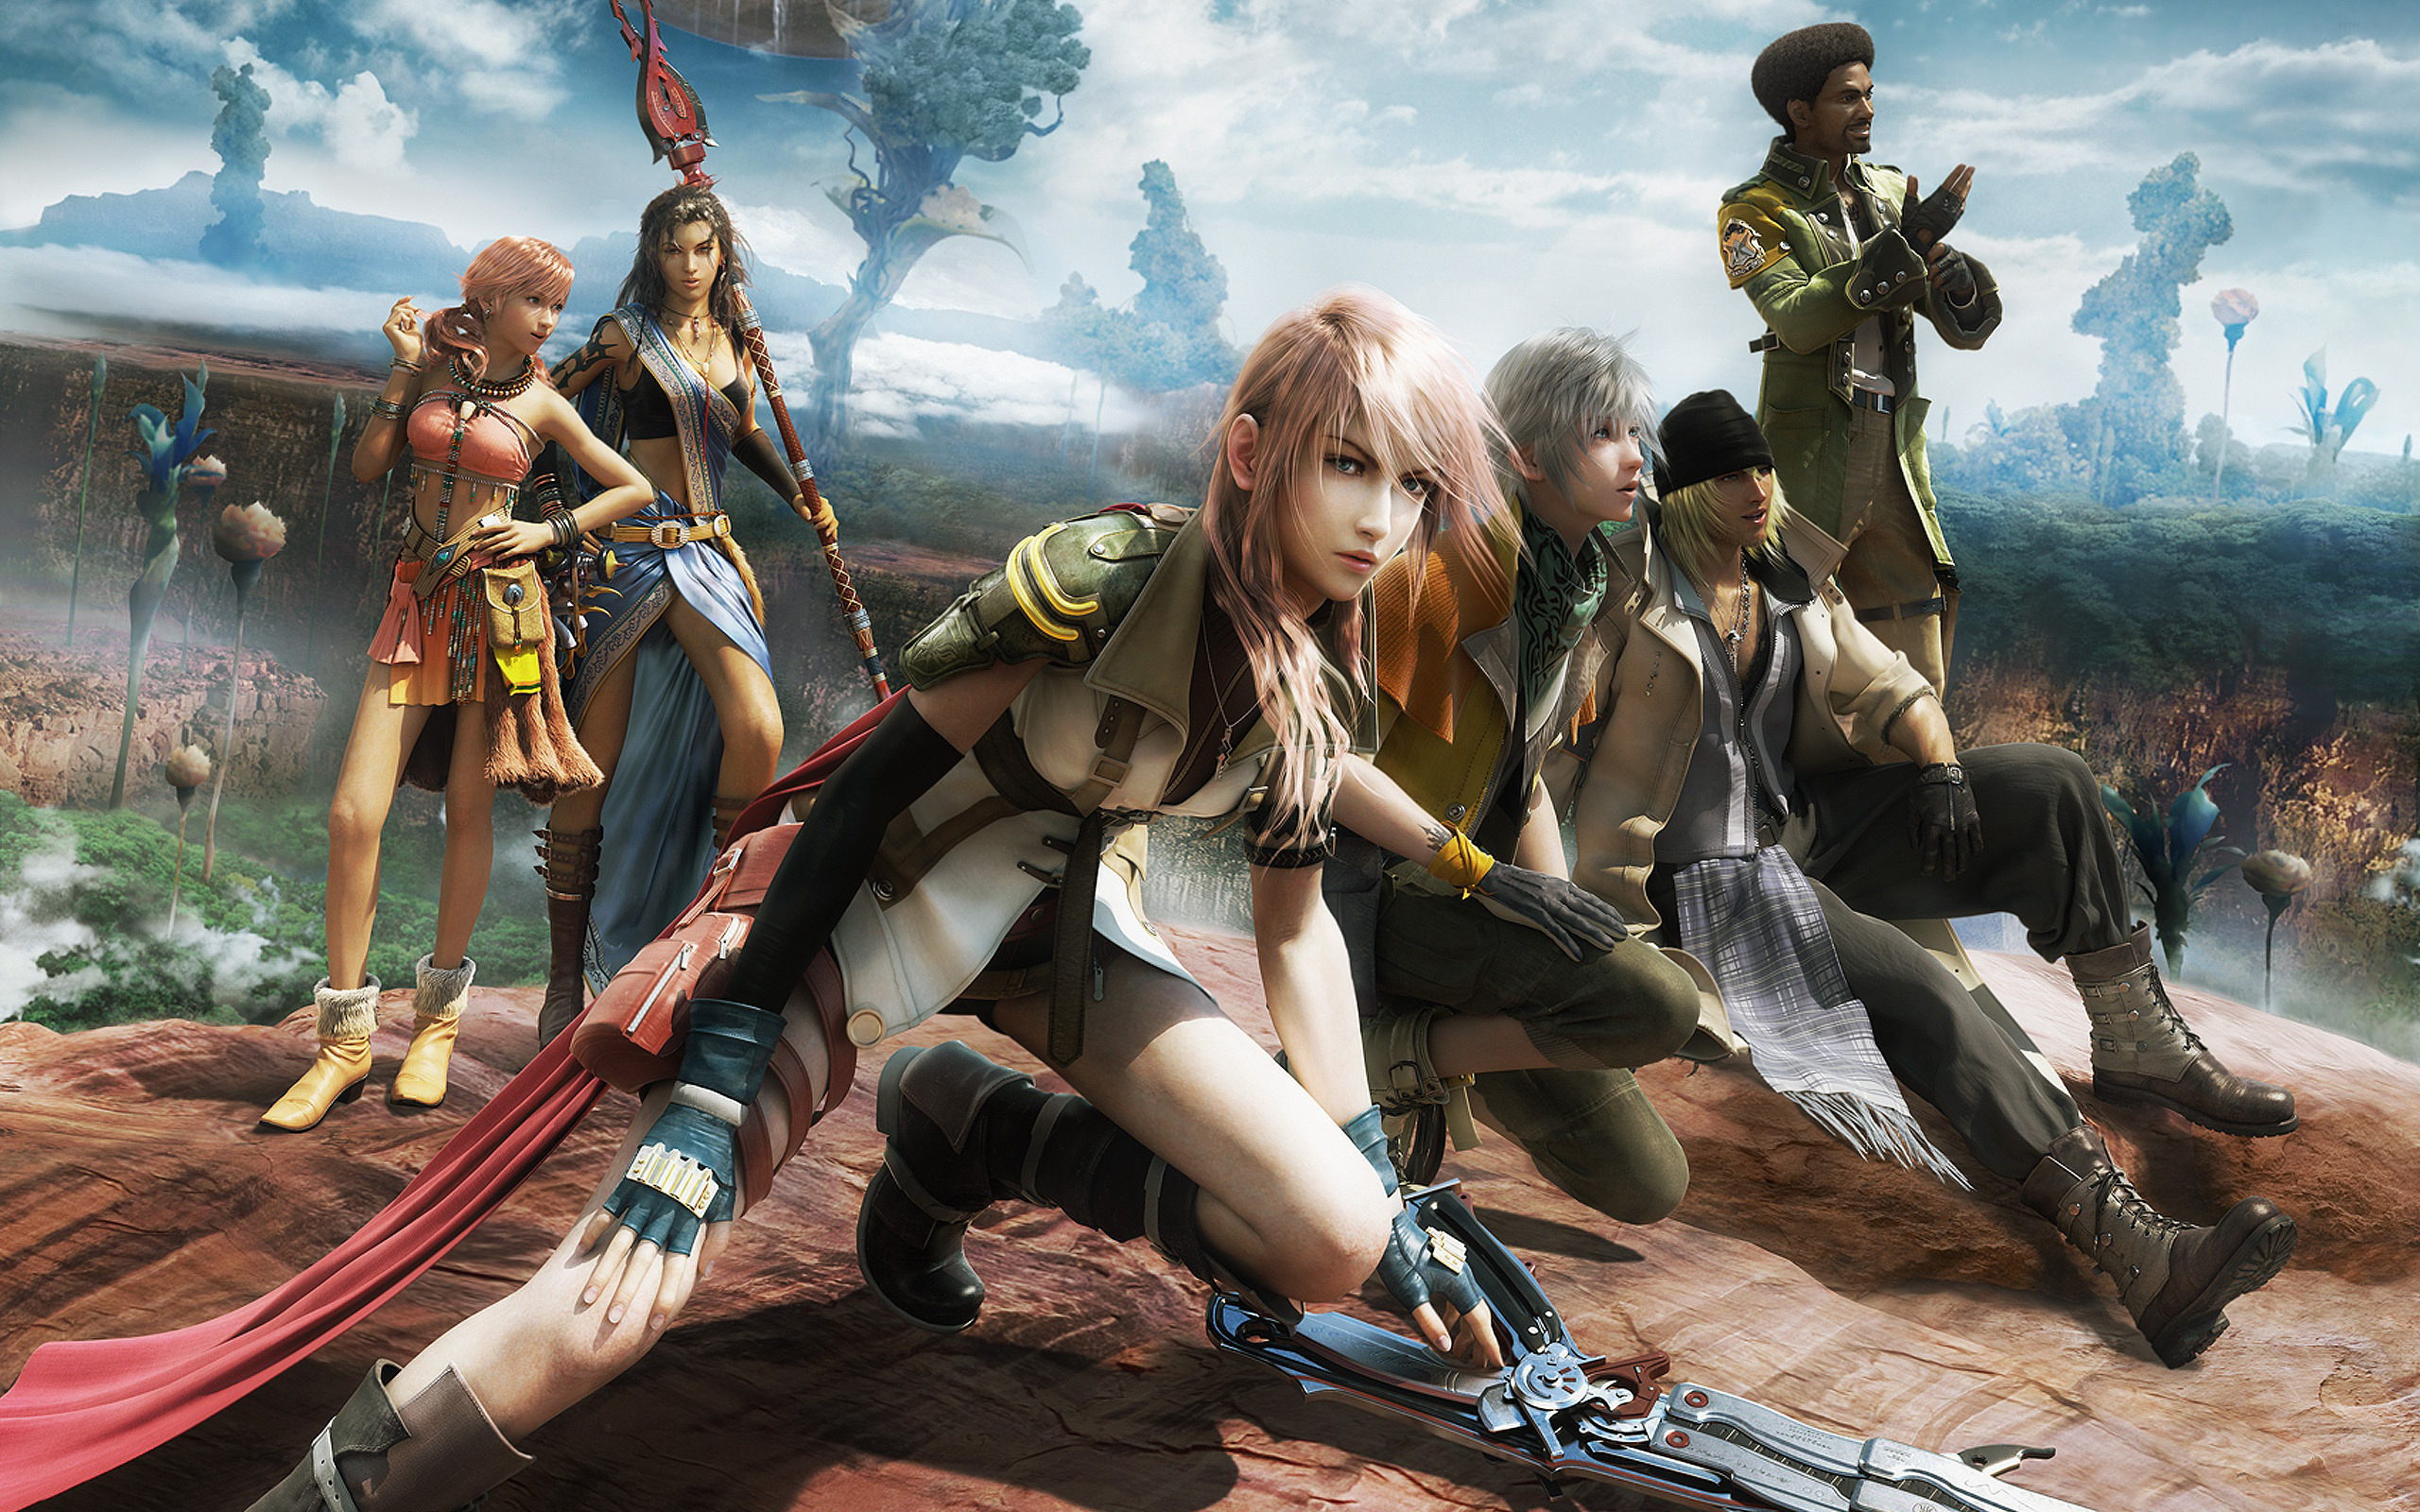 review final fantasy xiii 2 share indonesian ideas